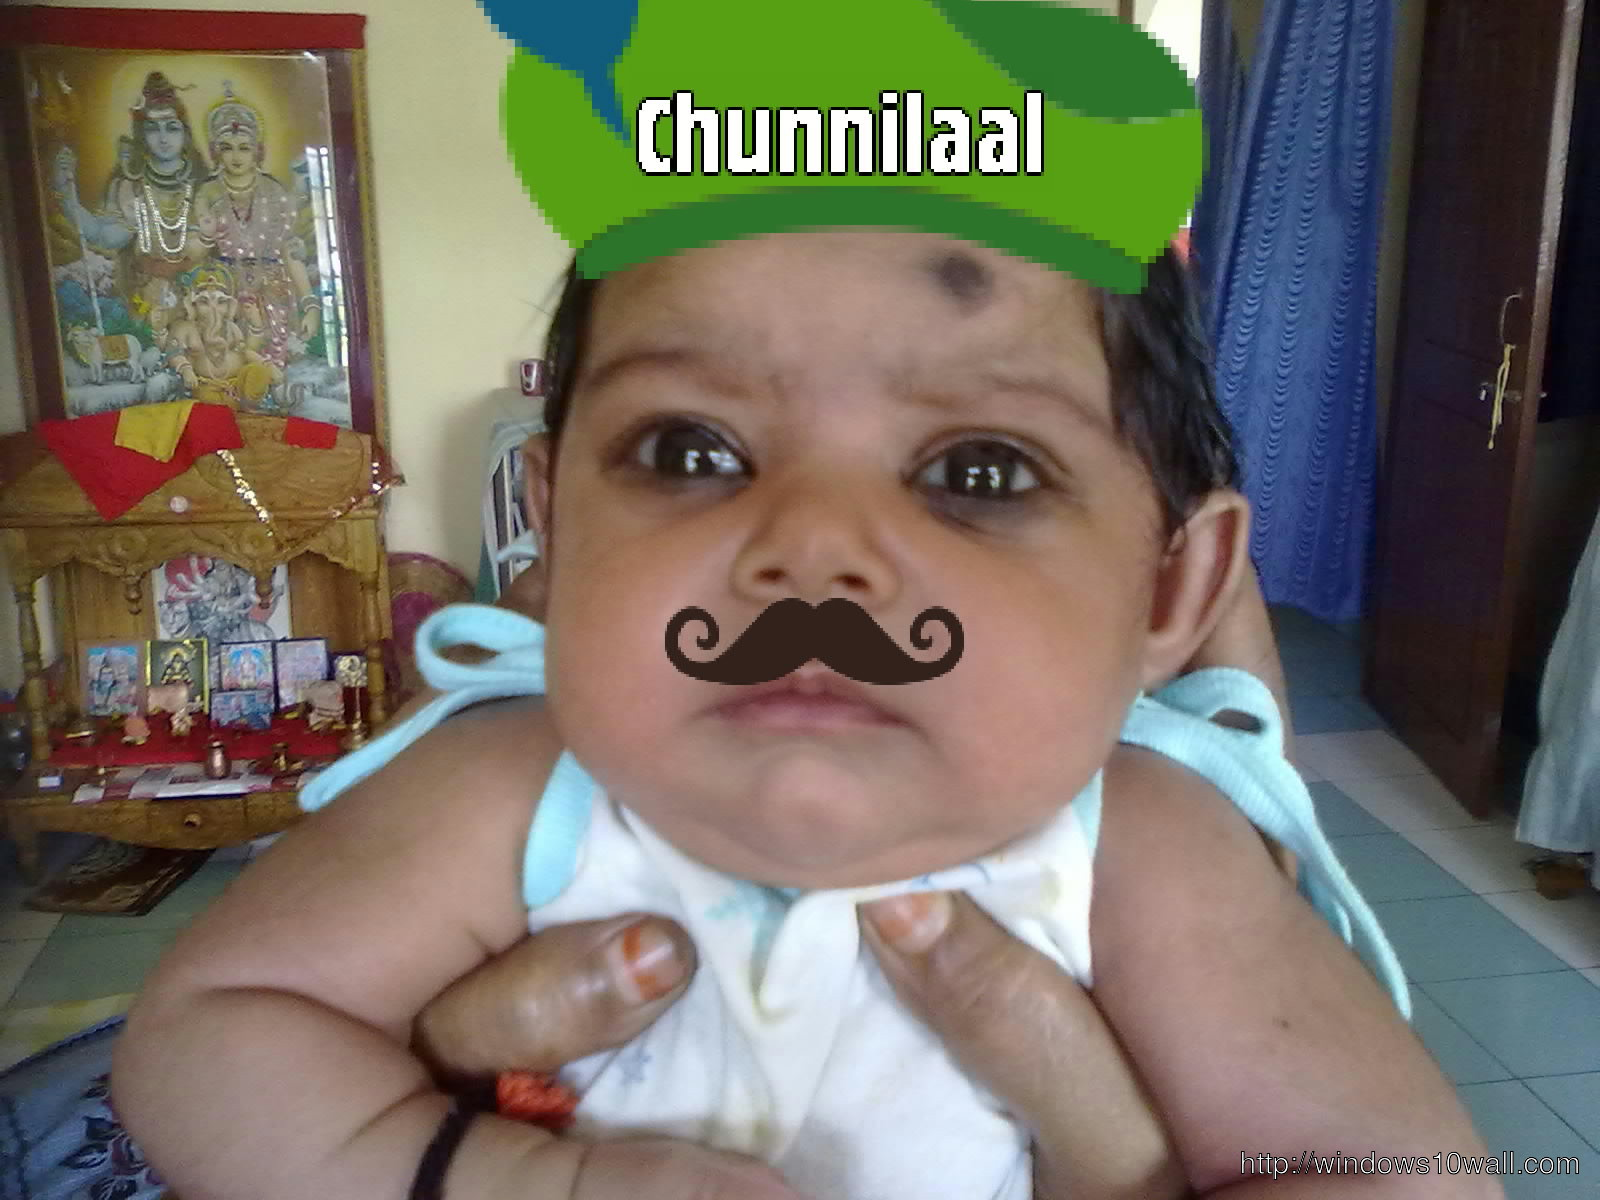 Funny Cool Kid Chunnilaal Wallpaper